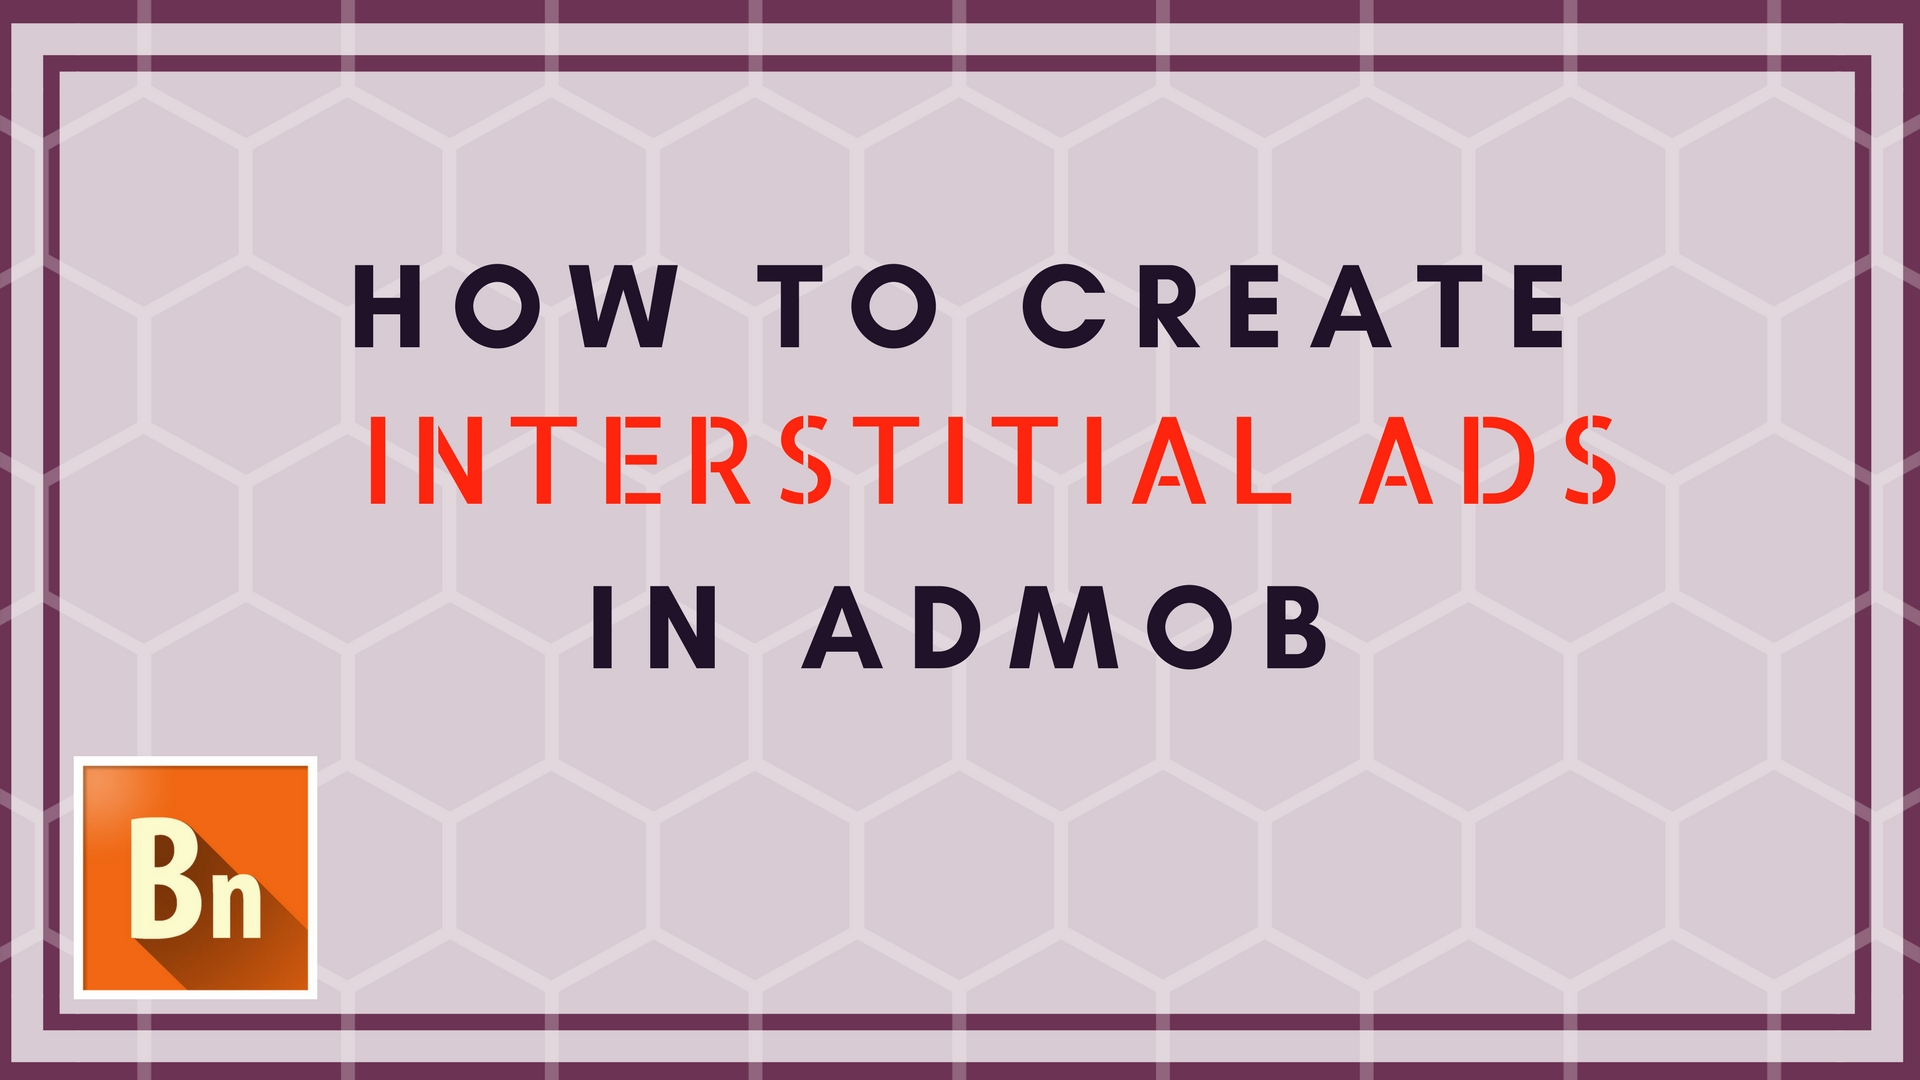 How to Create Interstitial Ads in Admob